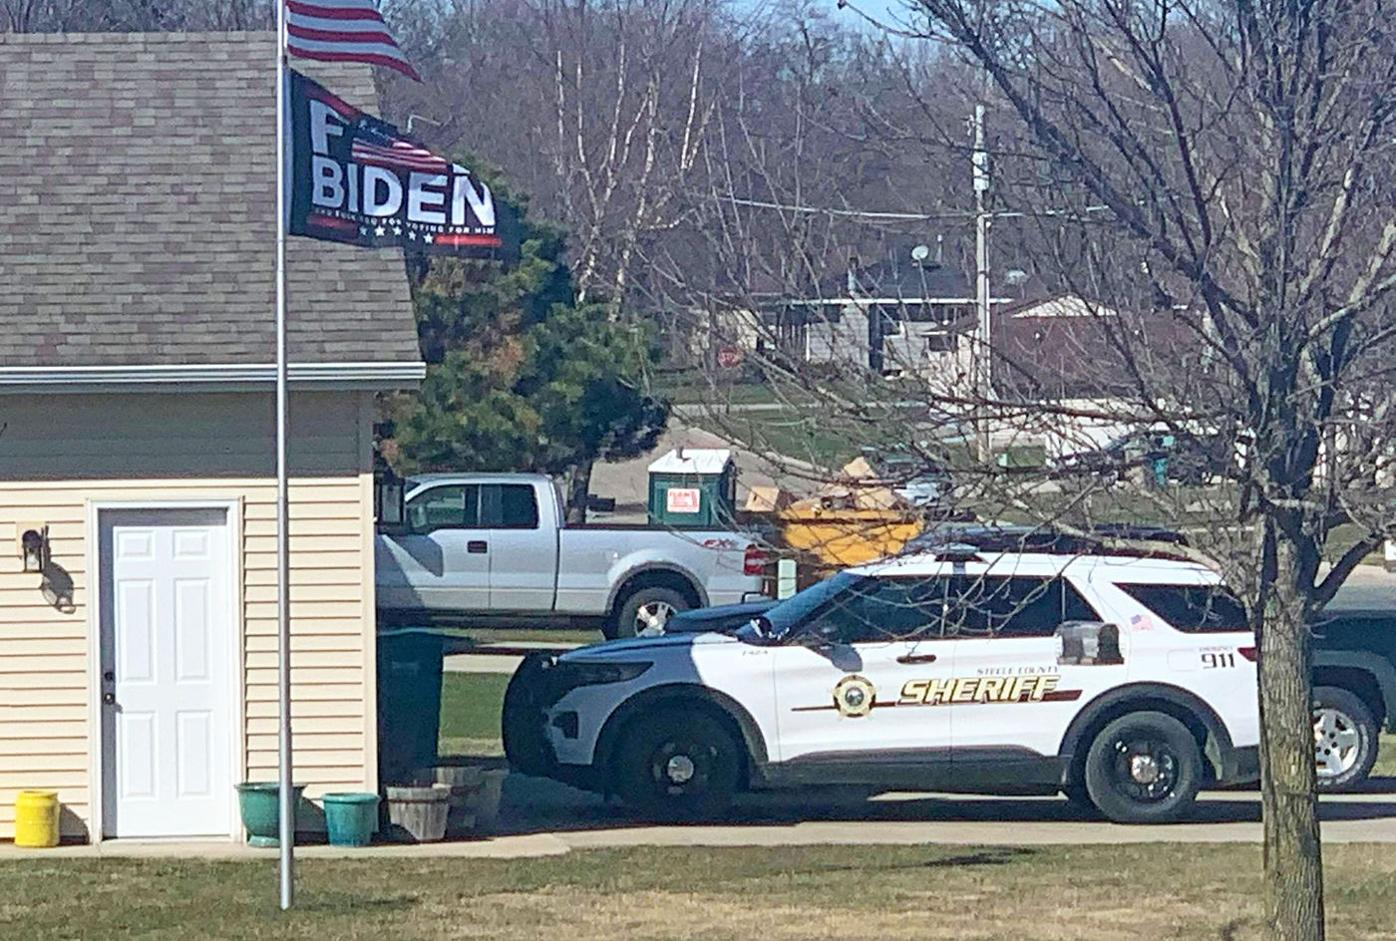 Deputy's squad car in Medford